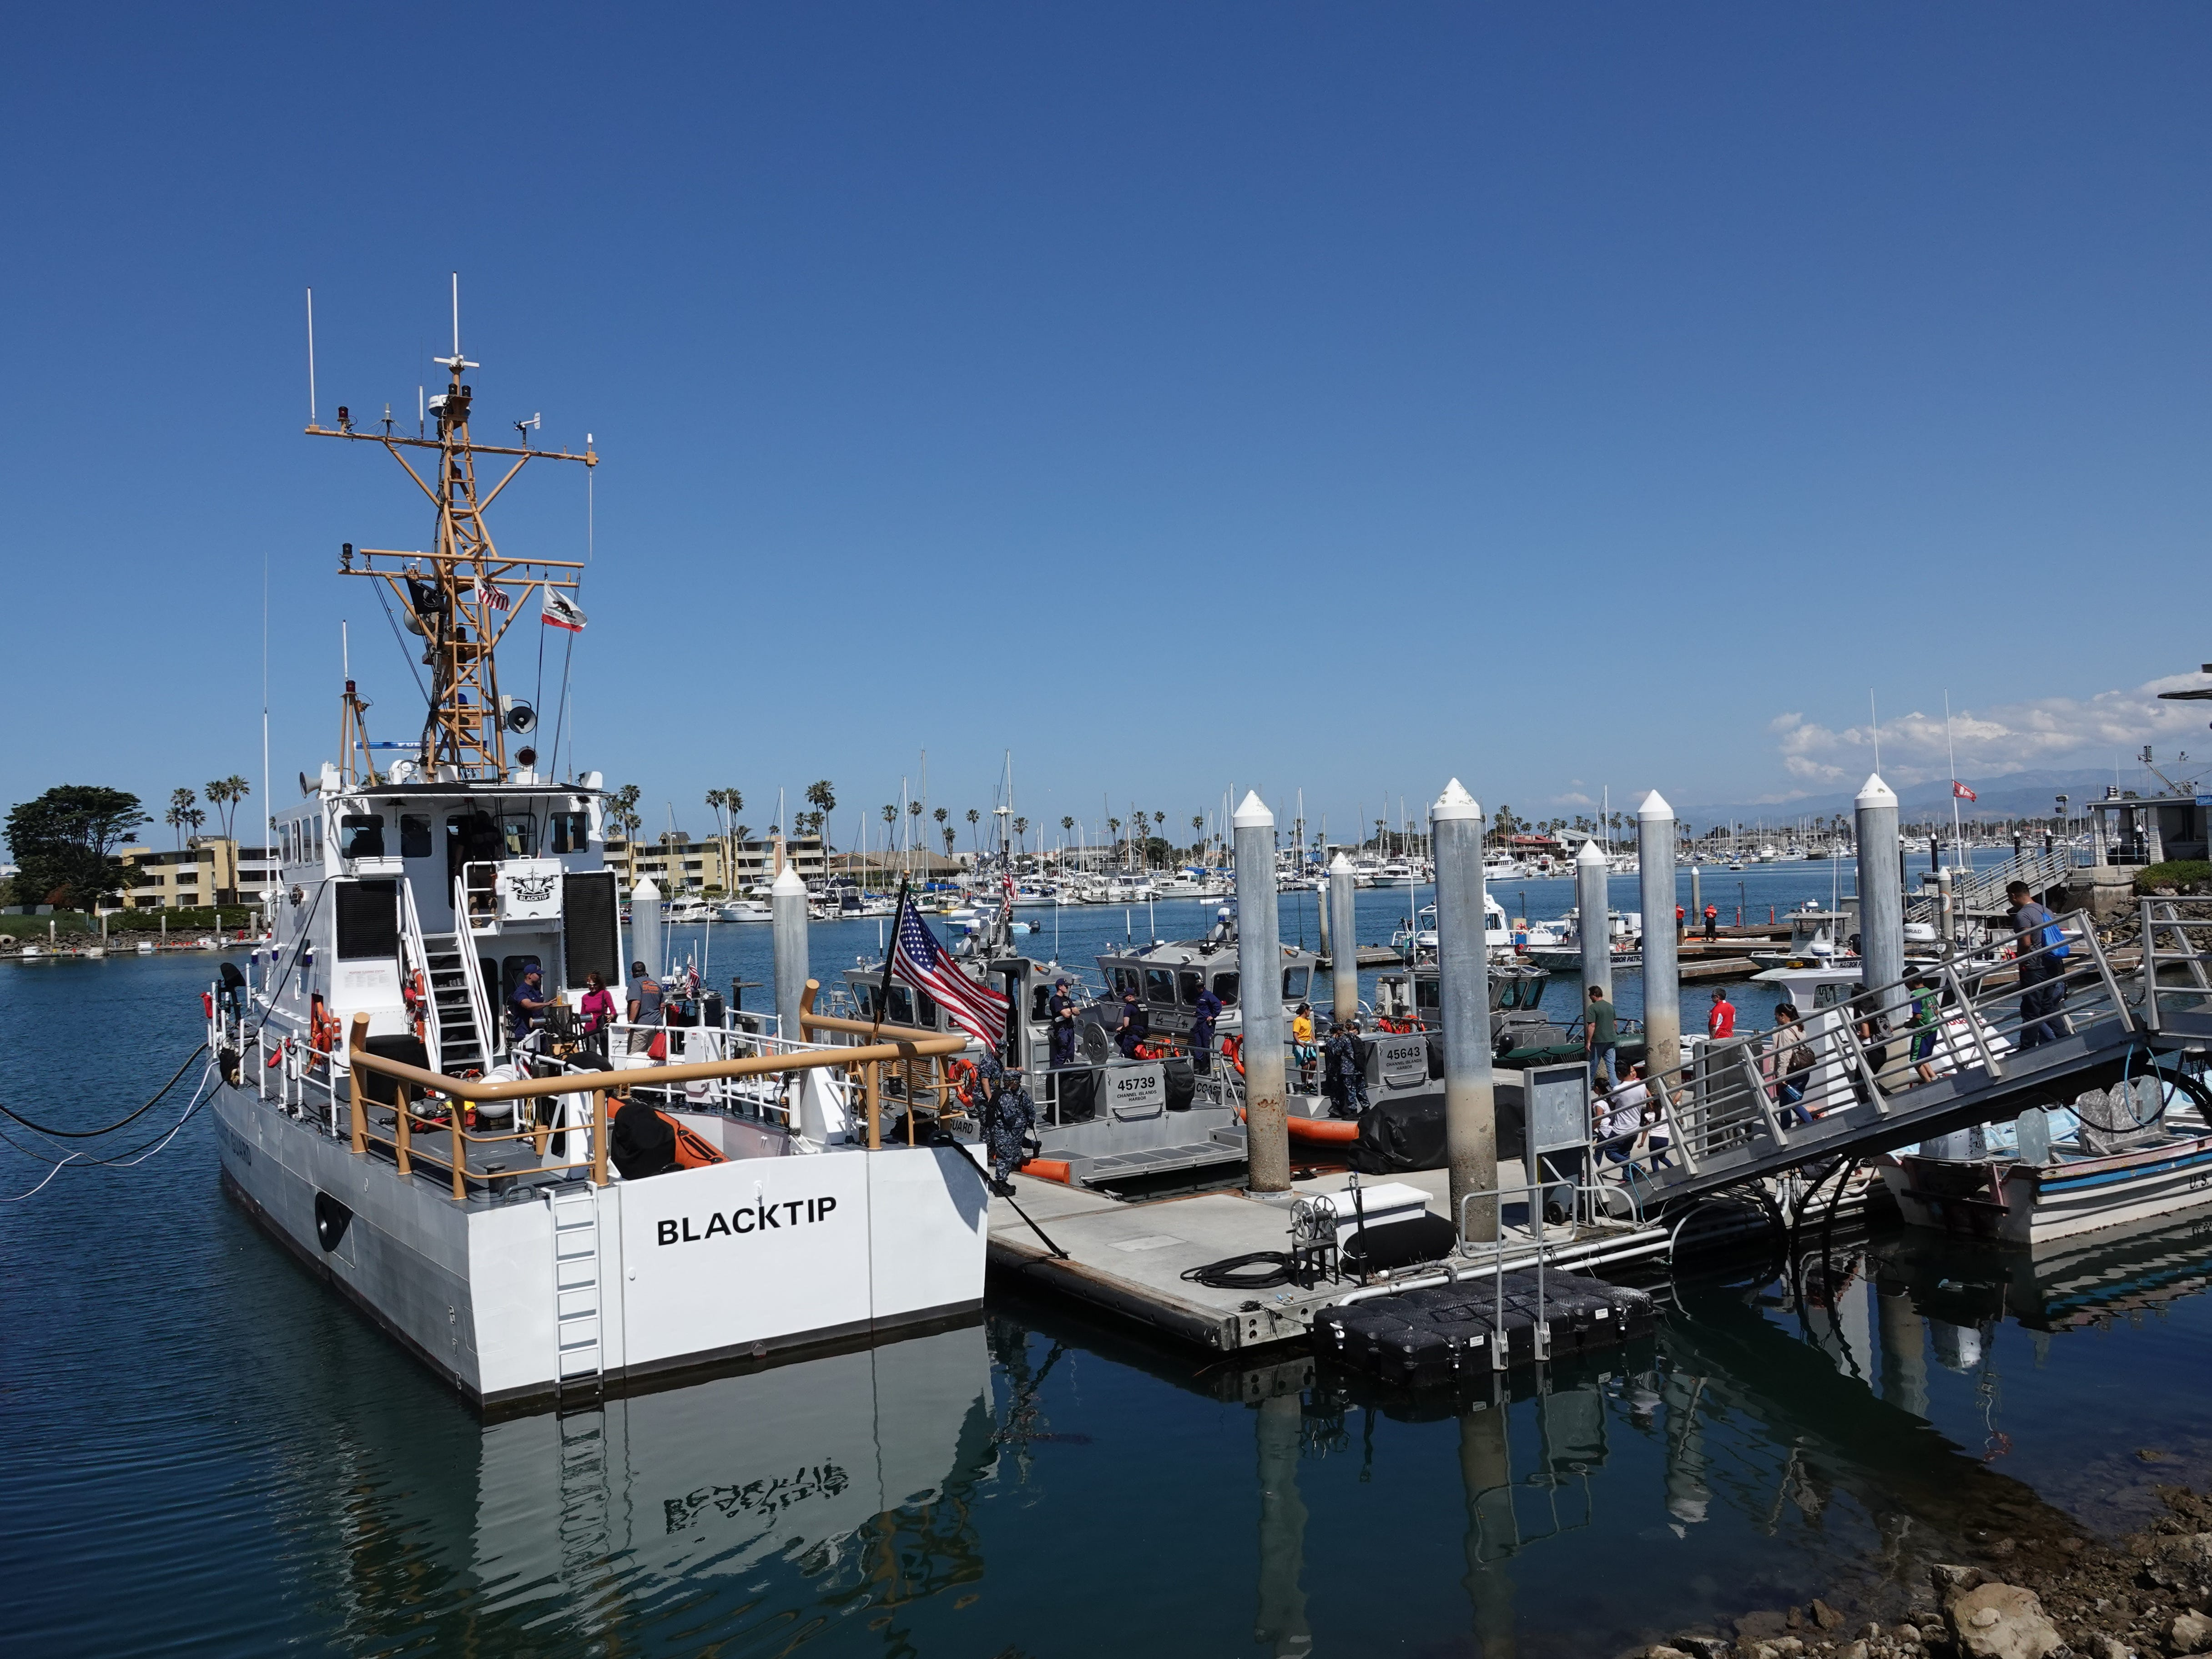 The public got to tour the Blacktip, a Coast Guard cutter, and two emergency response boats during Saturday's Safe Boating Expo at Channel Islands Harbor.